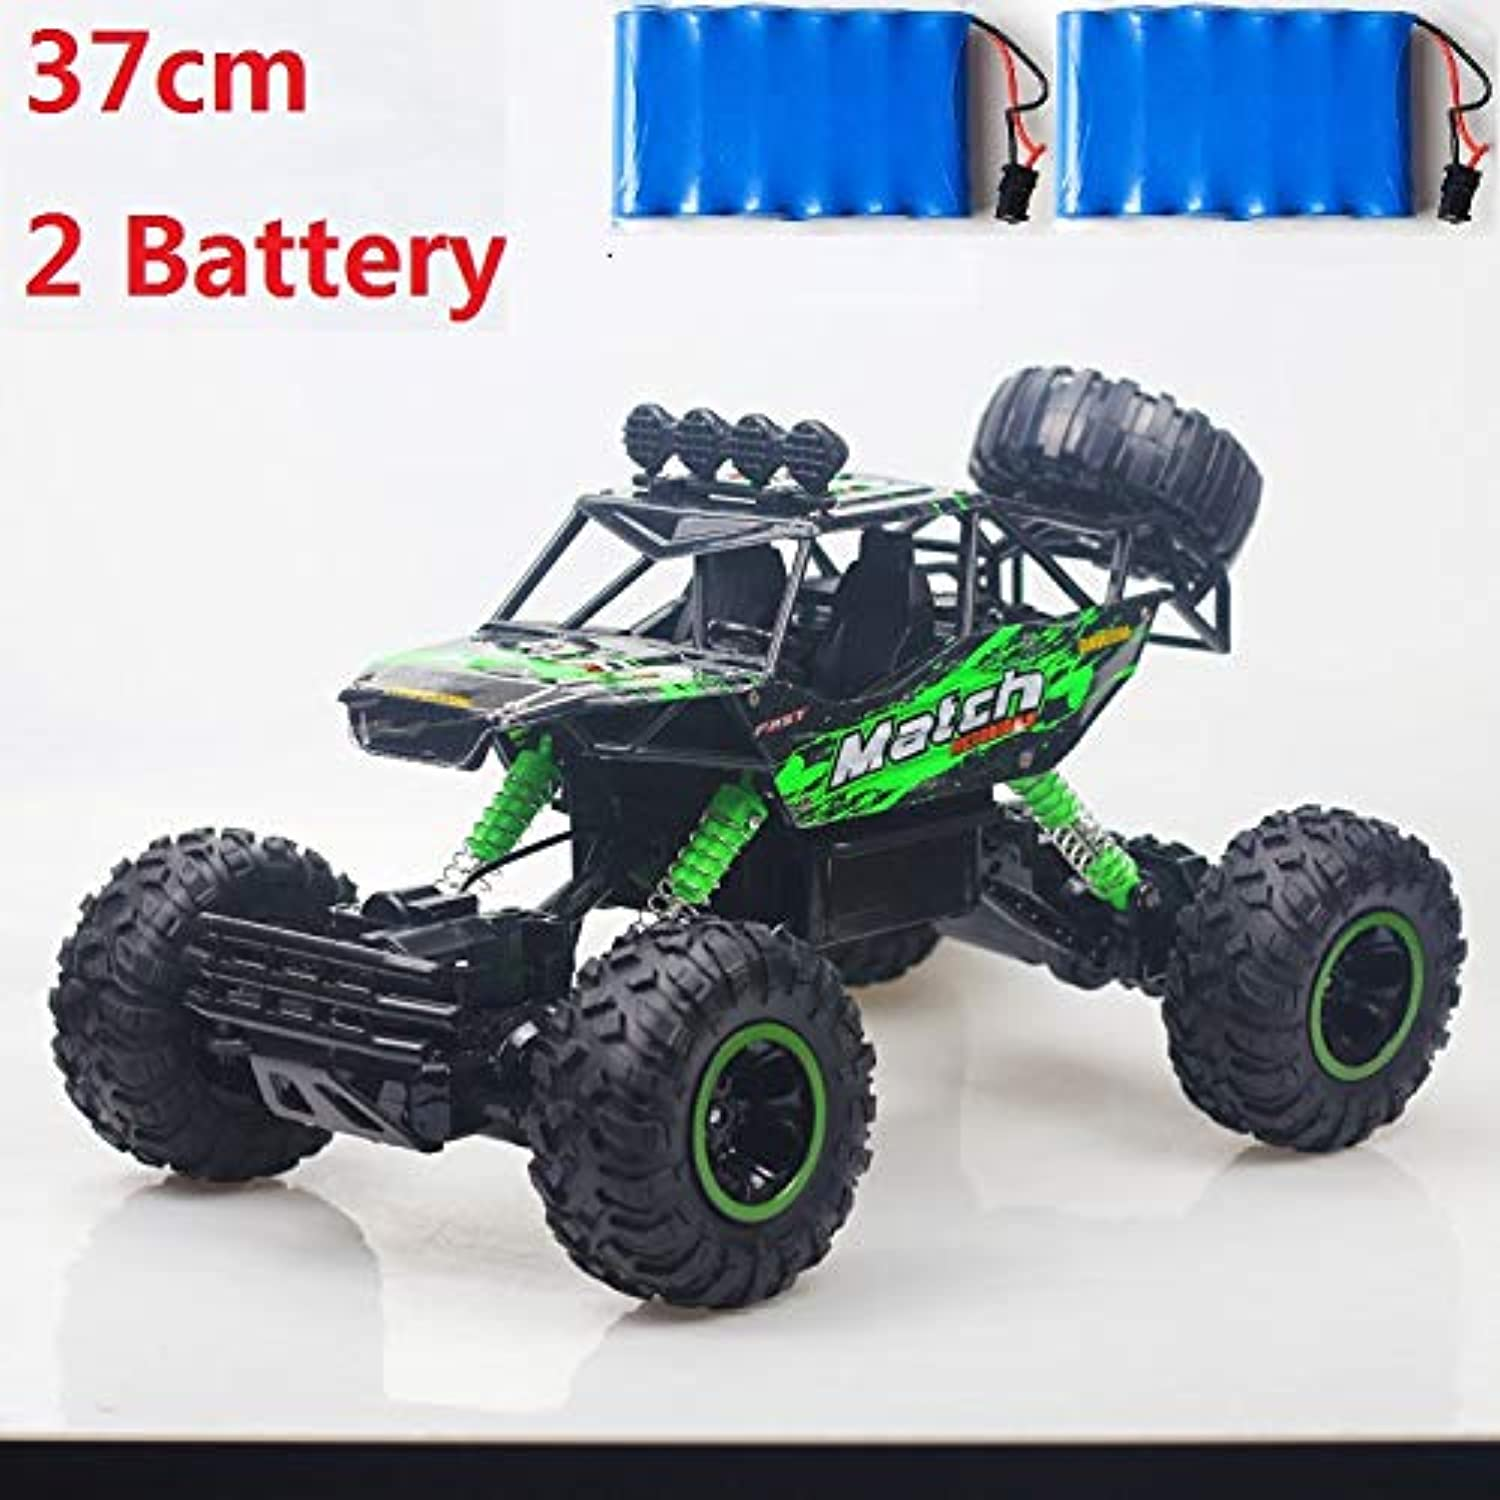 Generic RC Car 1 12 4WD Rock Crawlers 4x4 Driving Car Double Motors Drive Bigfoot Car Remote Control Car Model OffRoad Vehicle Toy Gift 37cm 2 Battery Green